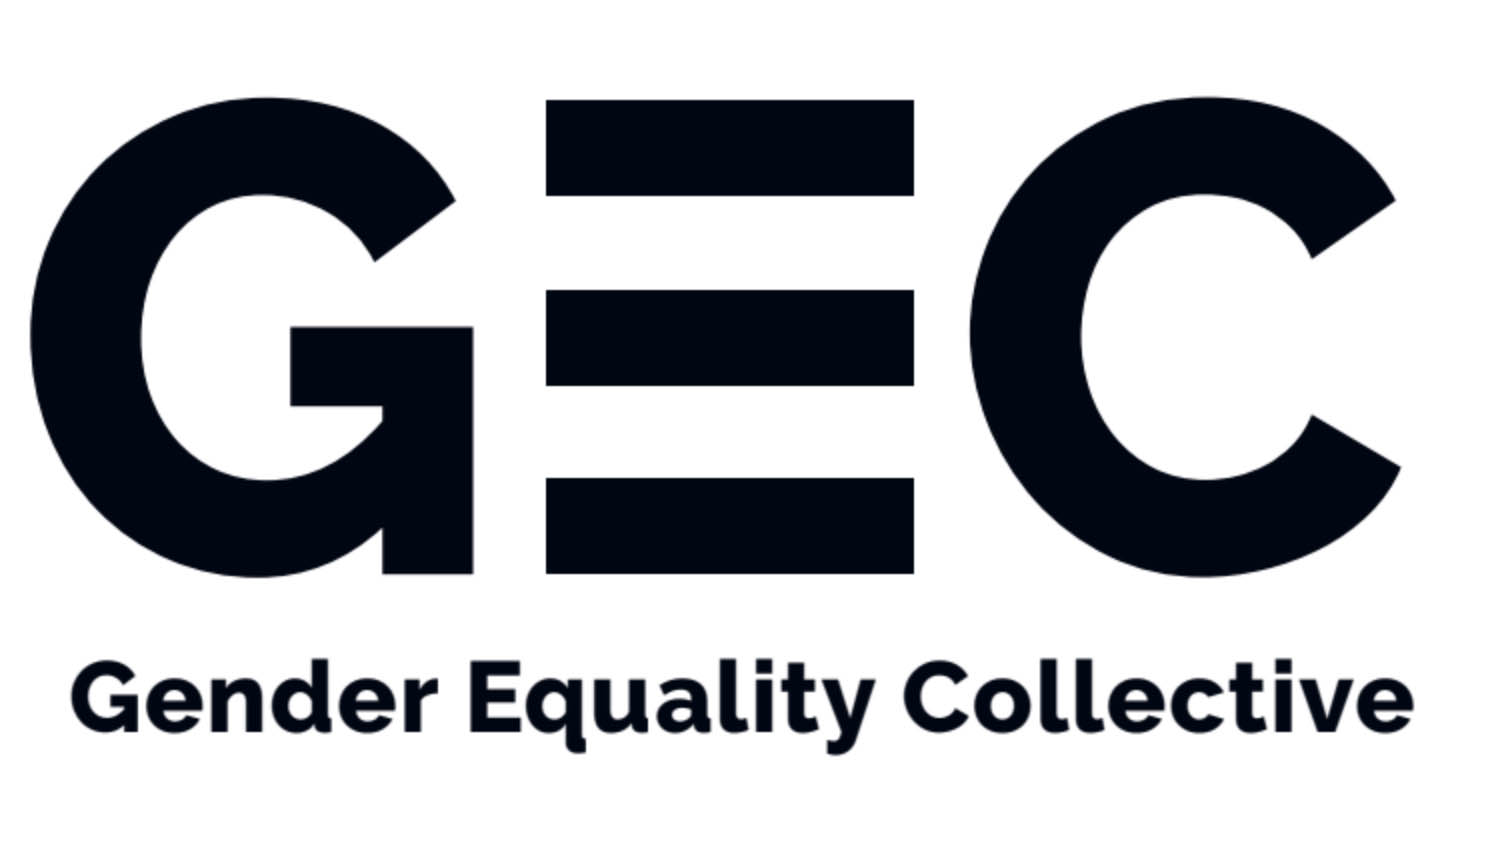 Gender Equality Collective Logo